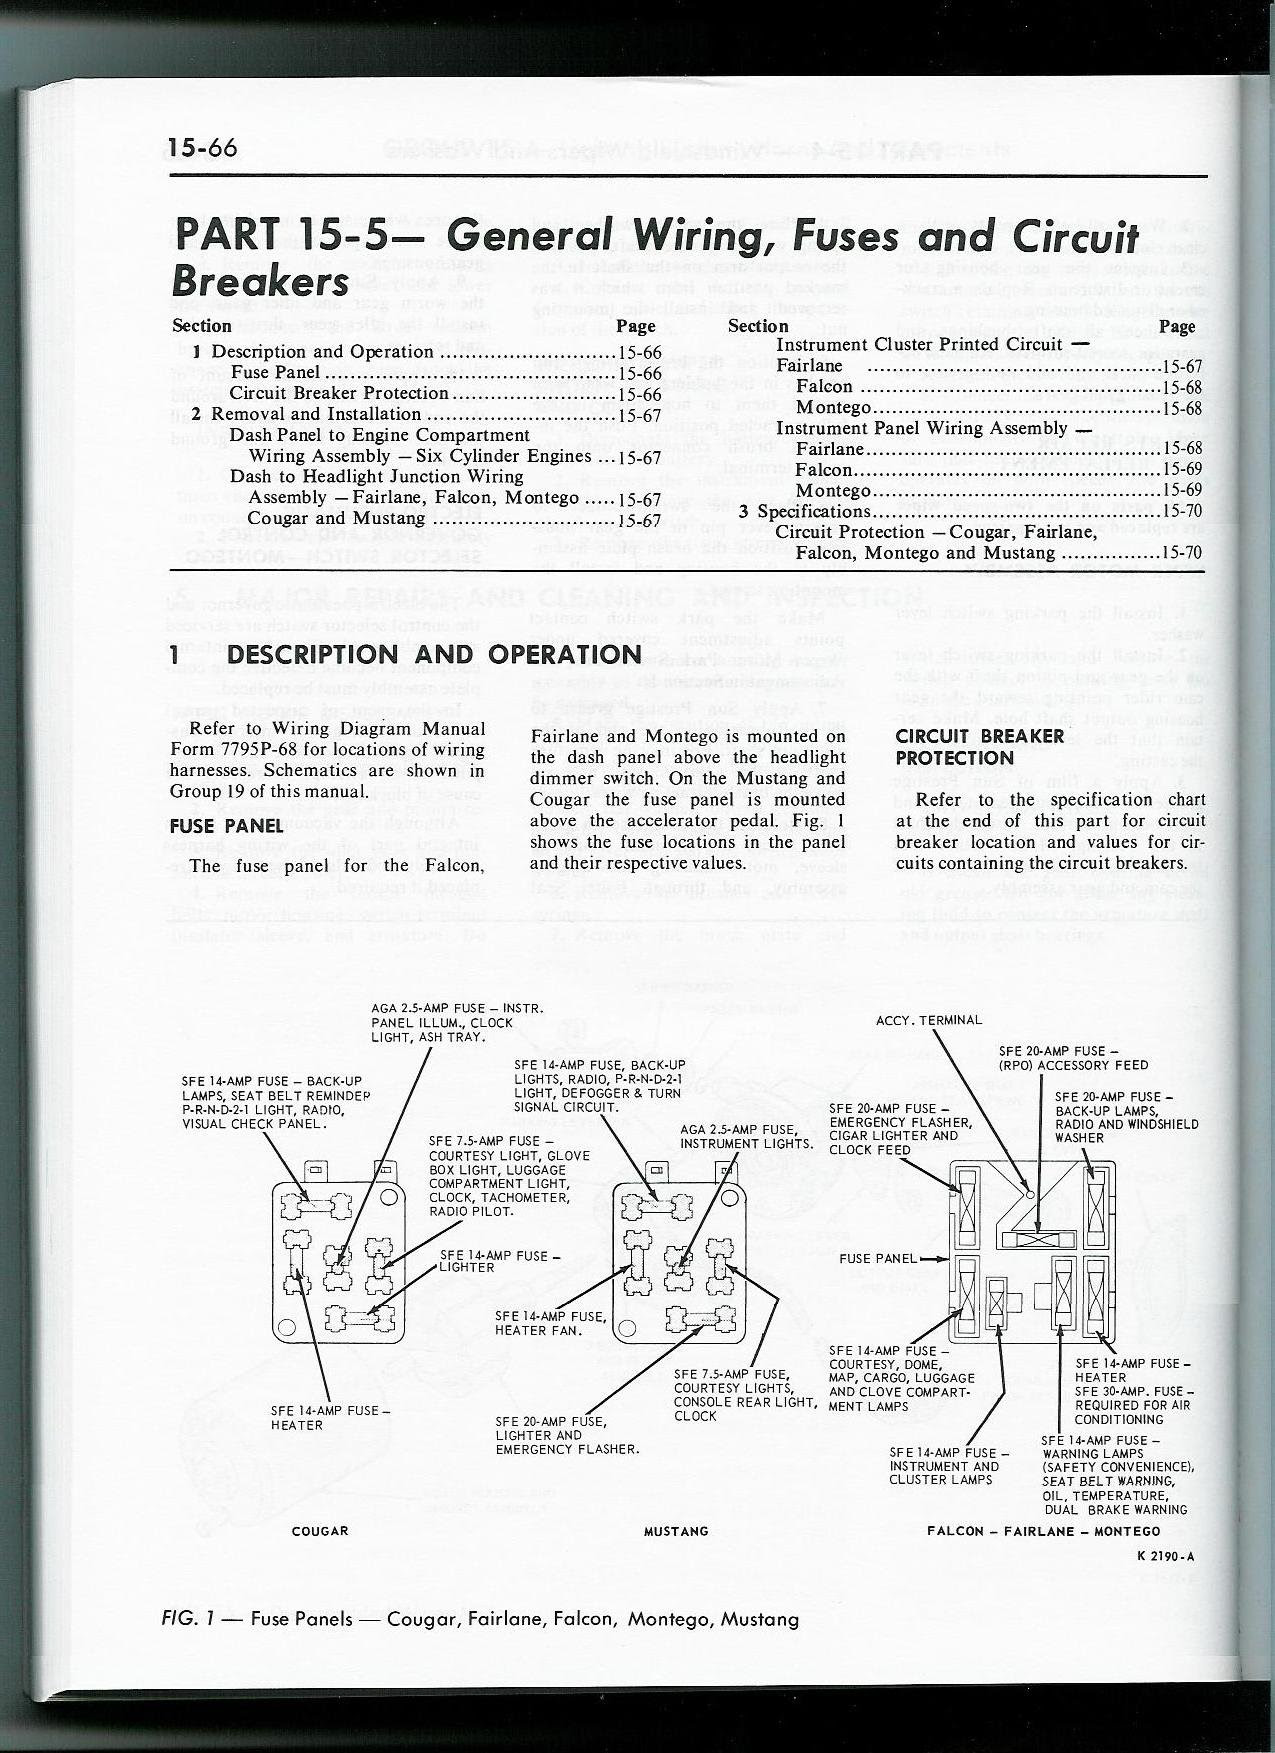 68 Mustang Fuse Box Diagram Gota Wiring Diagram